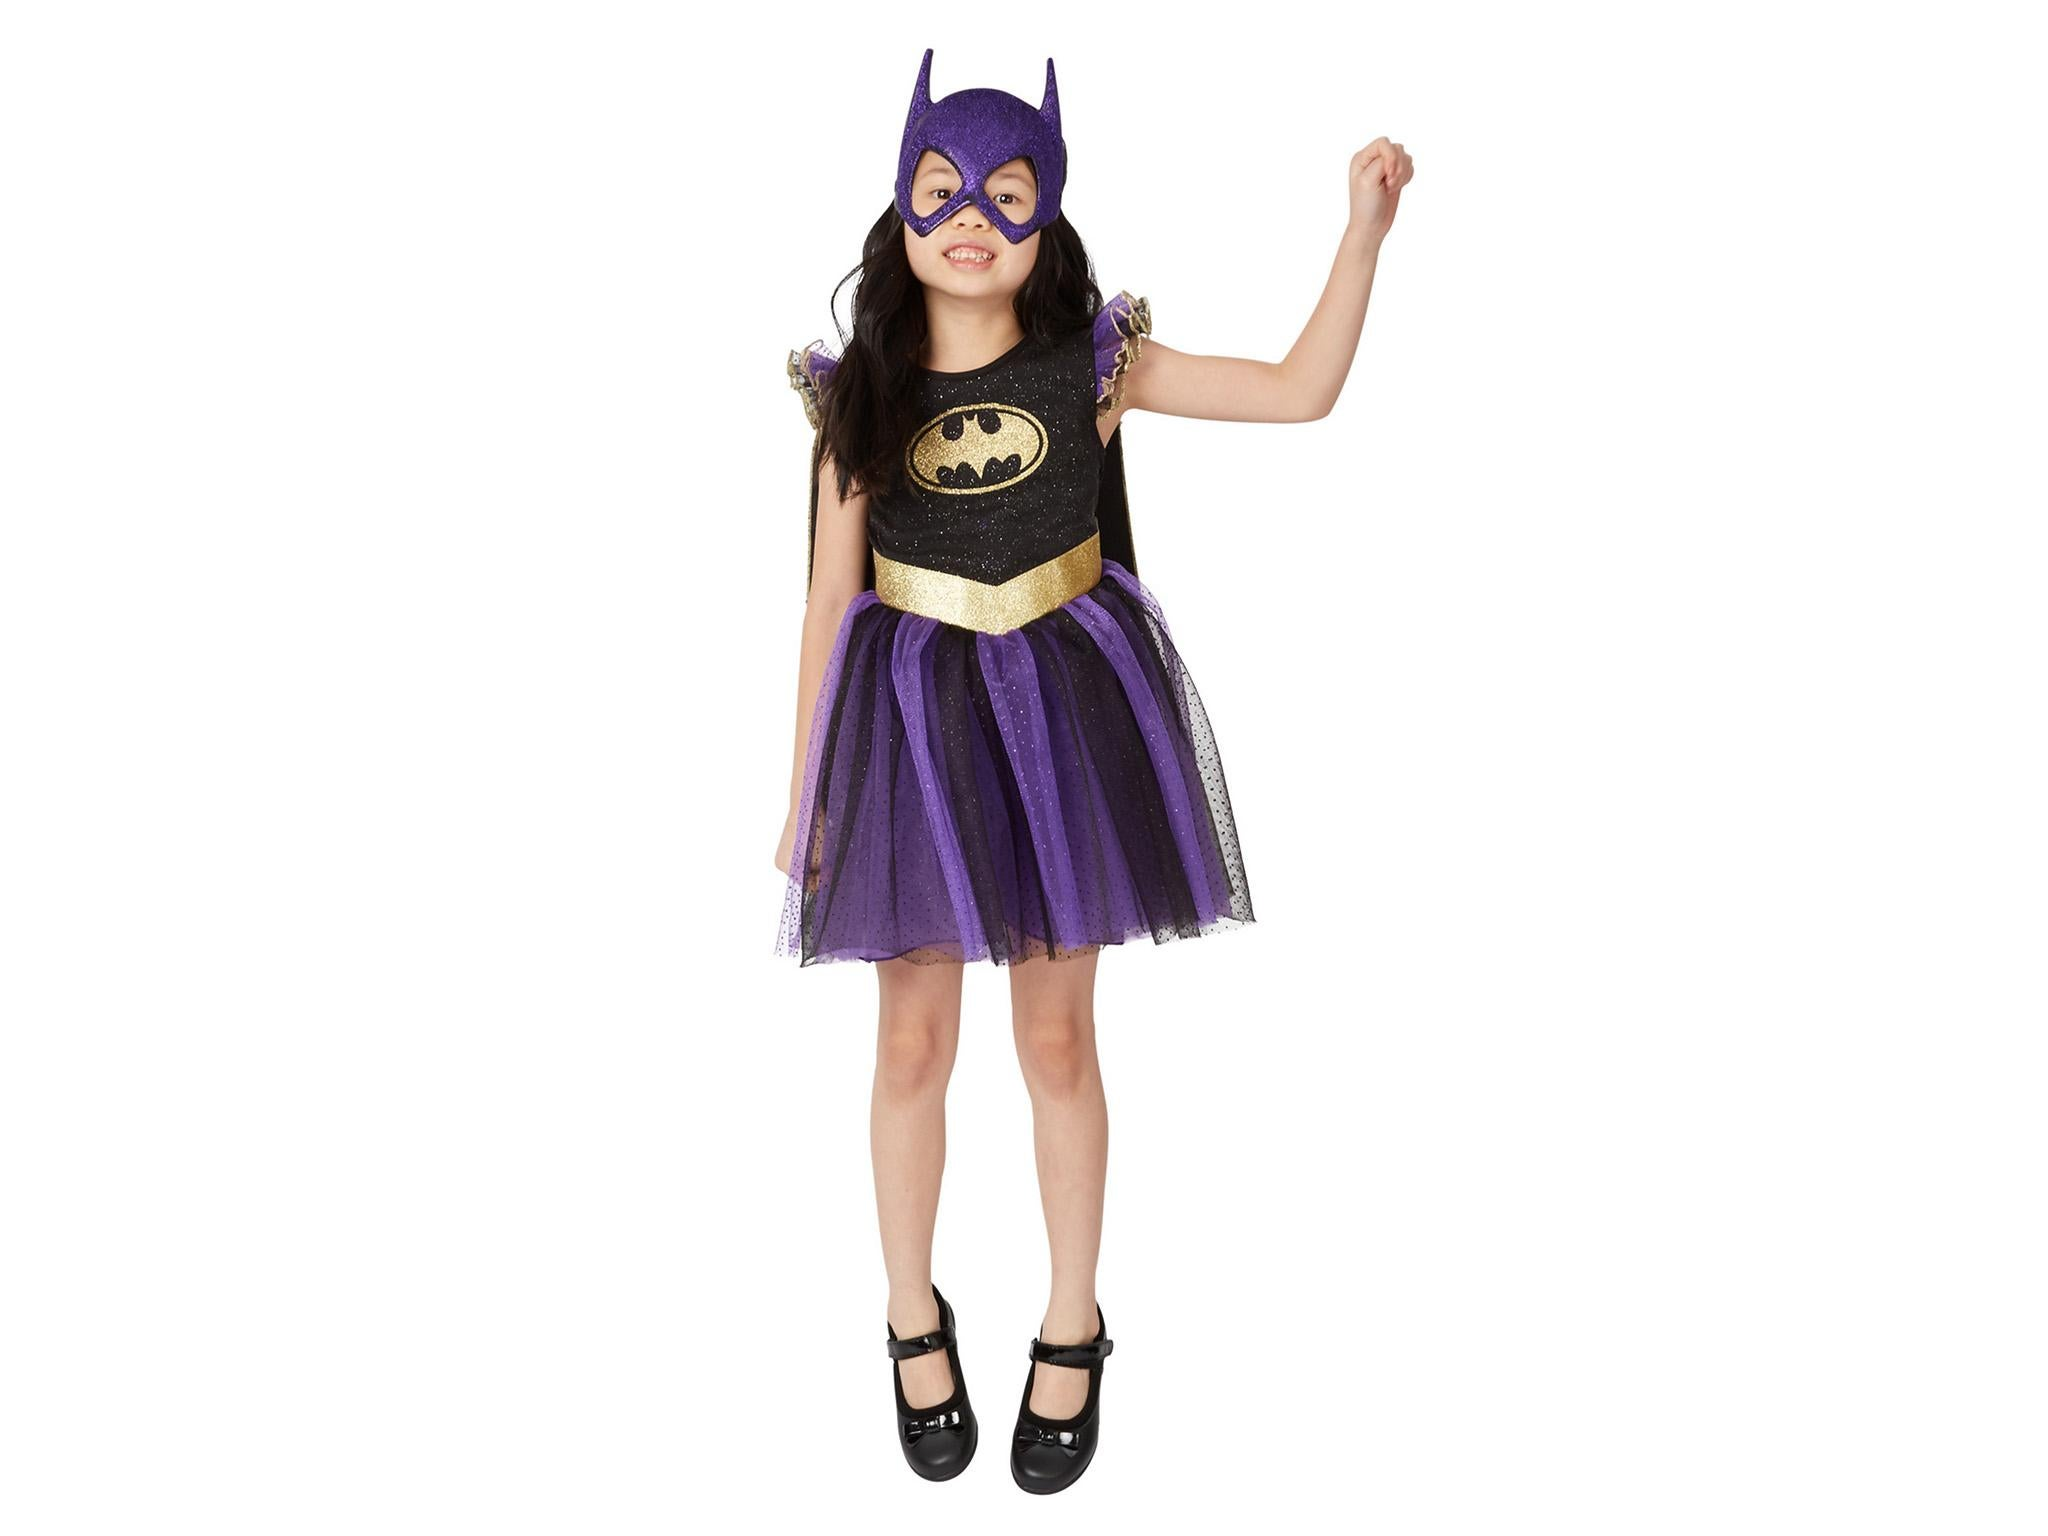 Halloween Costume 6 9 Months Uk.20 Best Kids And Babies Costumes For Halloween 2018 The Independent